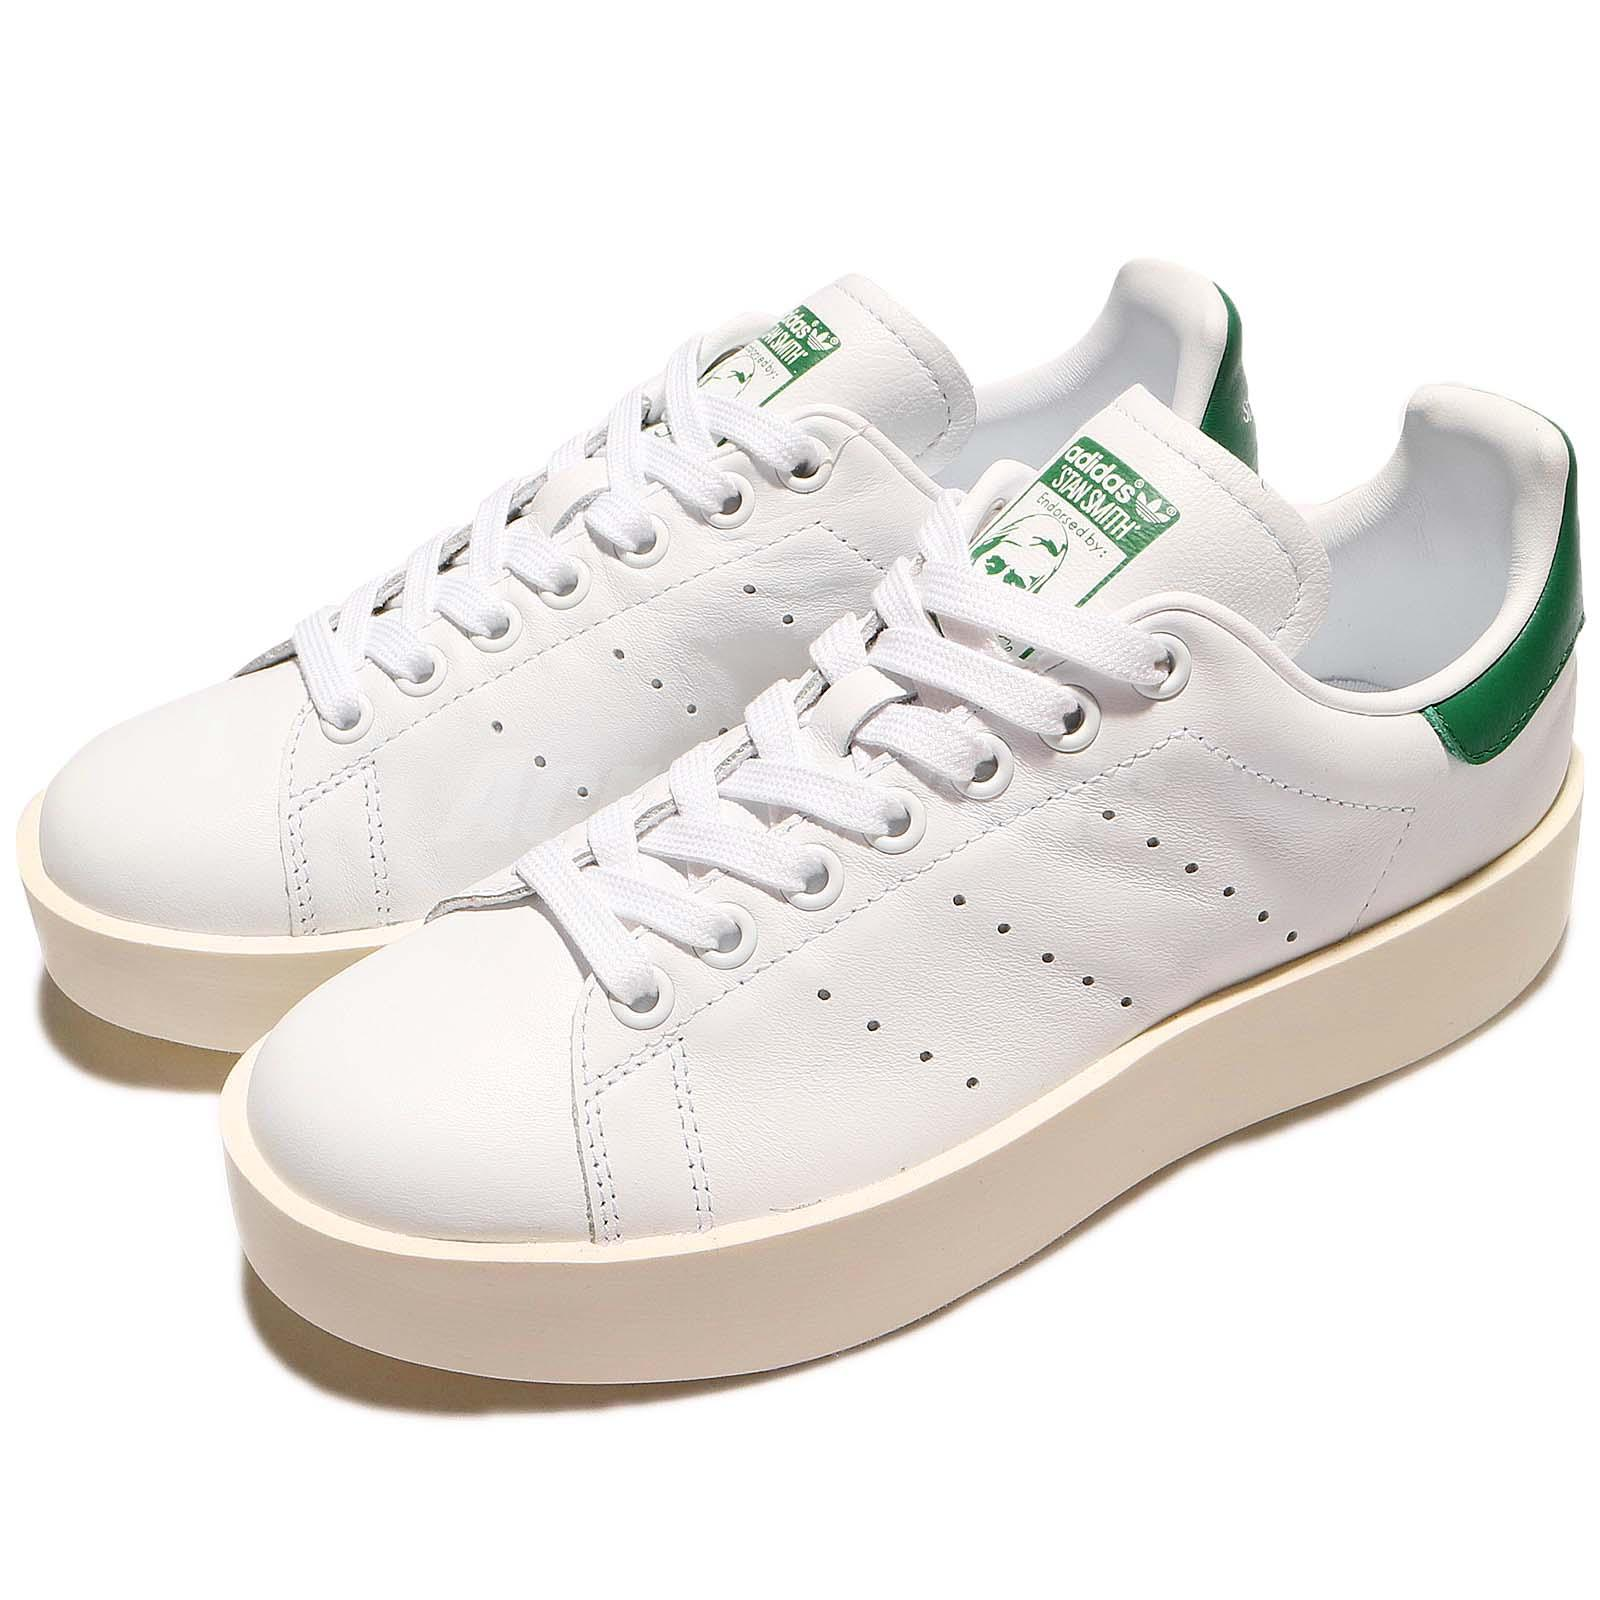 adidas Originals Stan Smith Bold W Platform White OG Green Leather ... ebc8c0abf9a4c